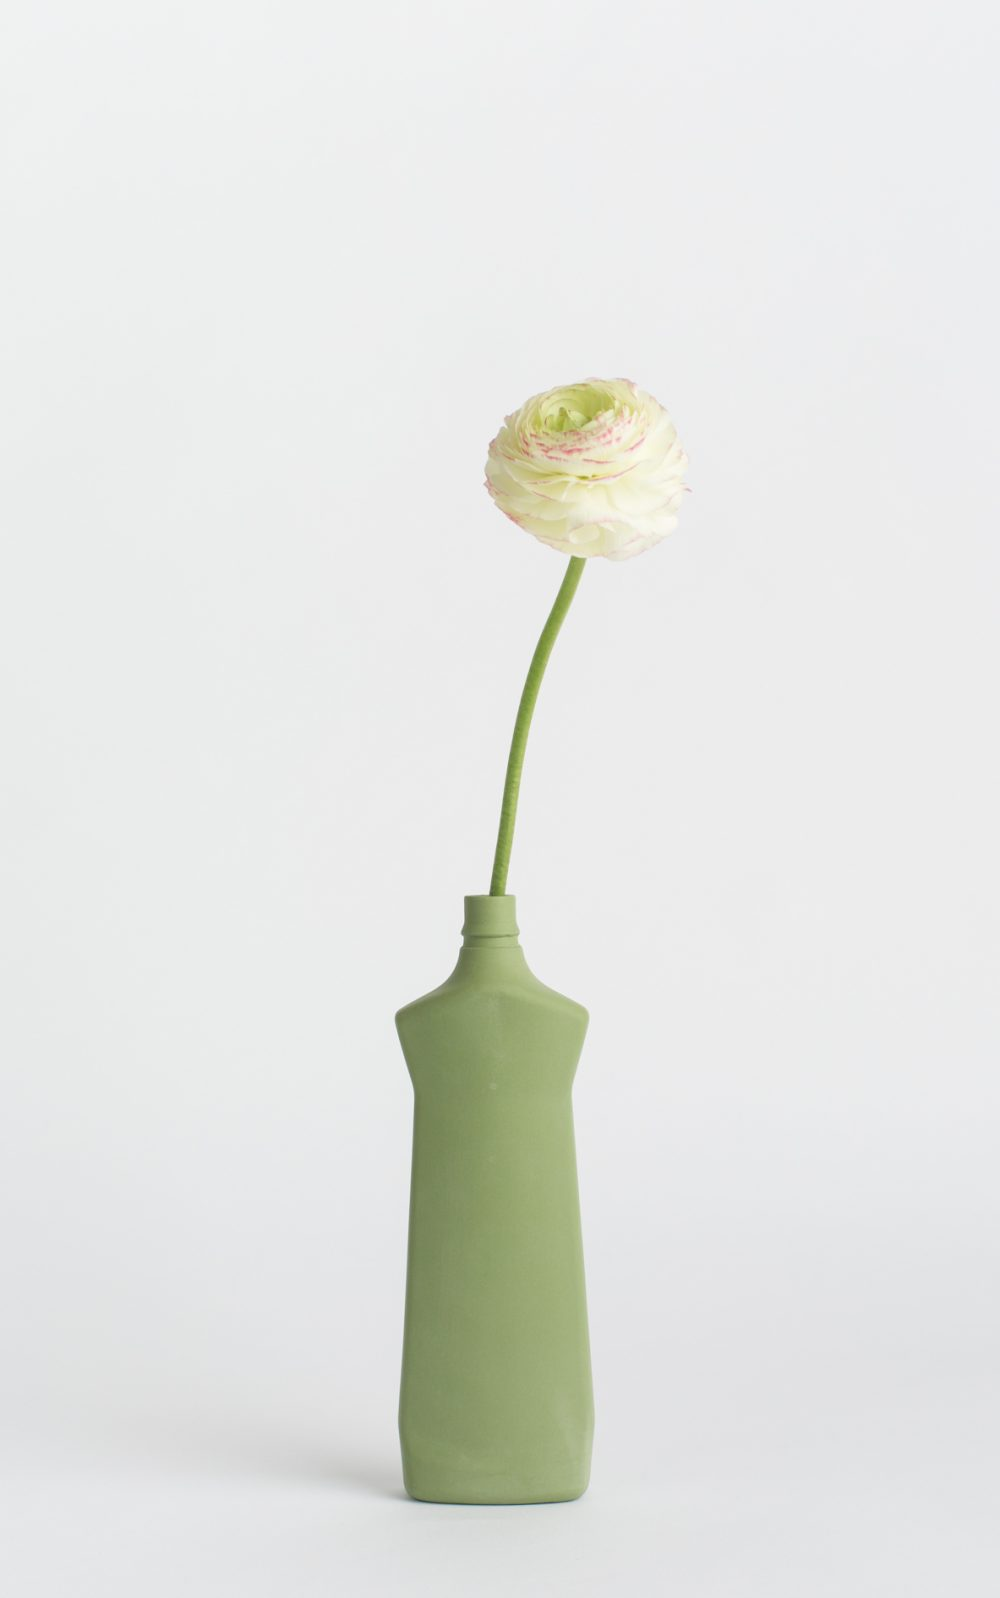 bottle vase #1 dark green with flower